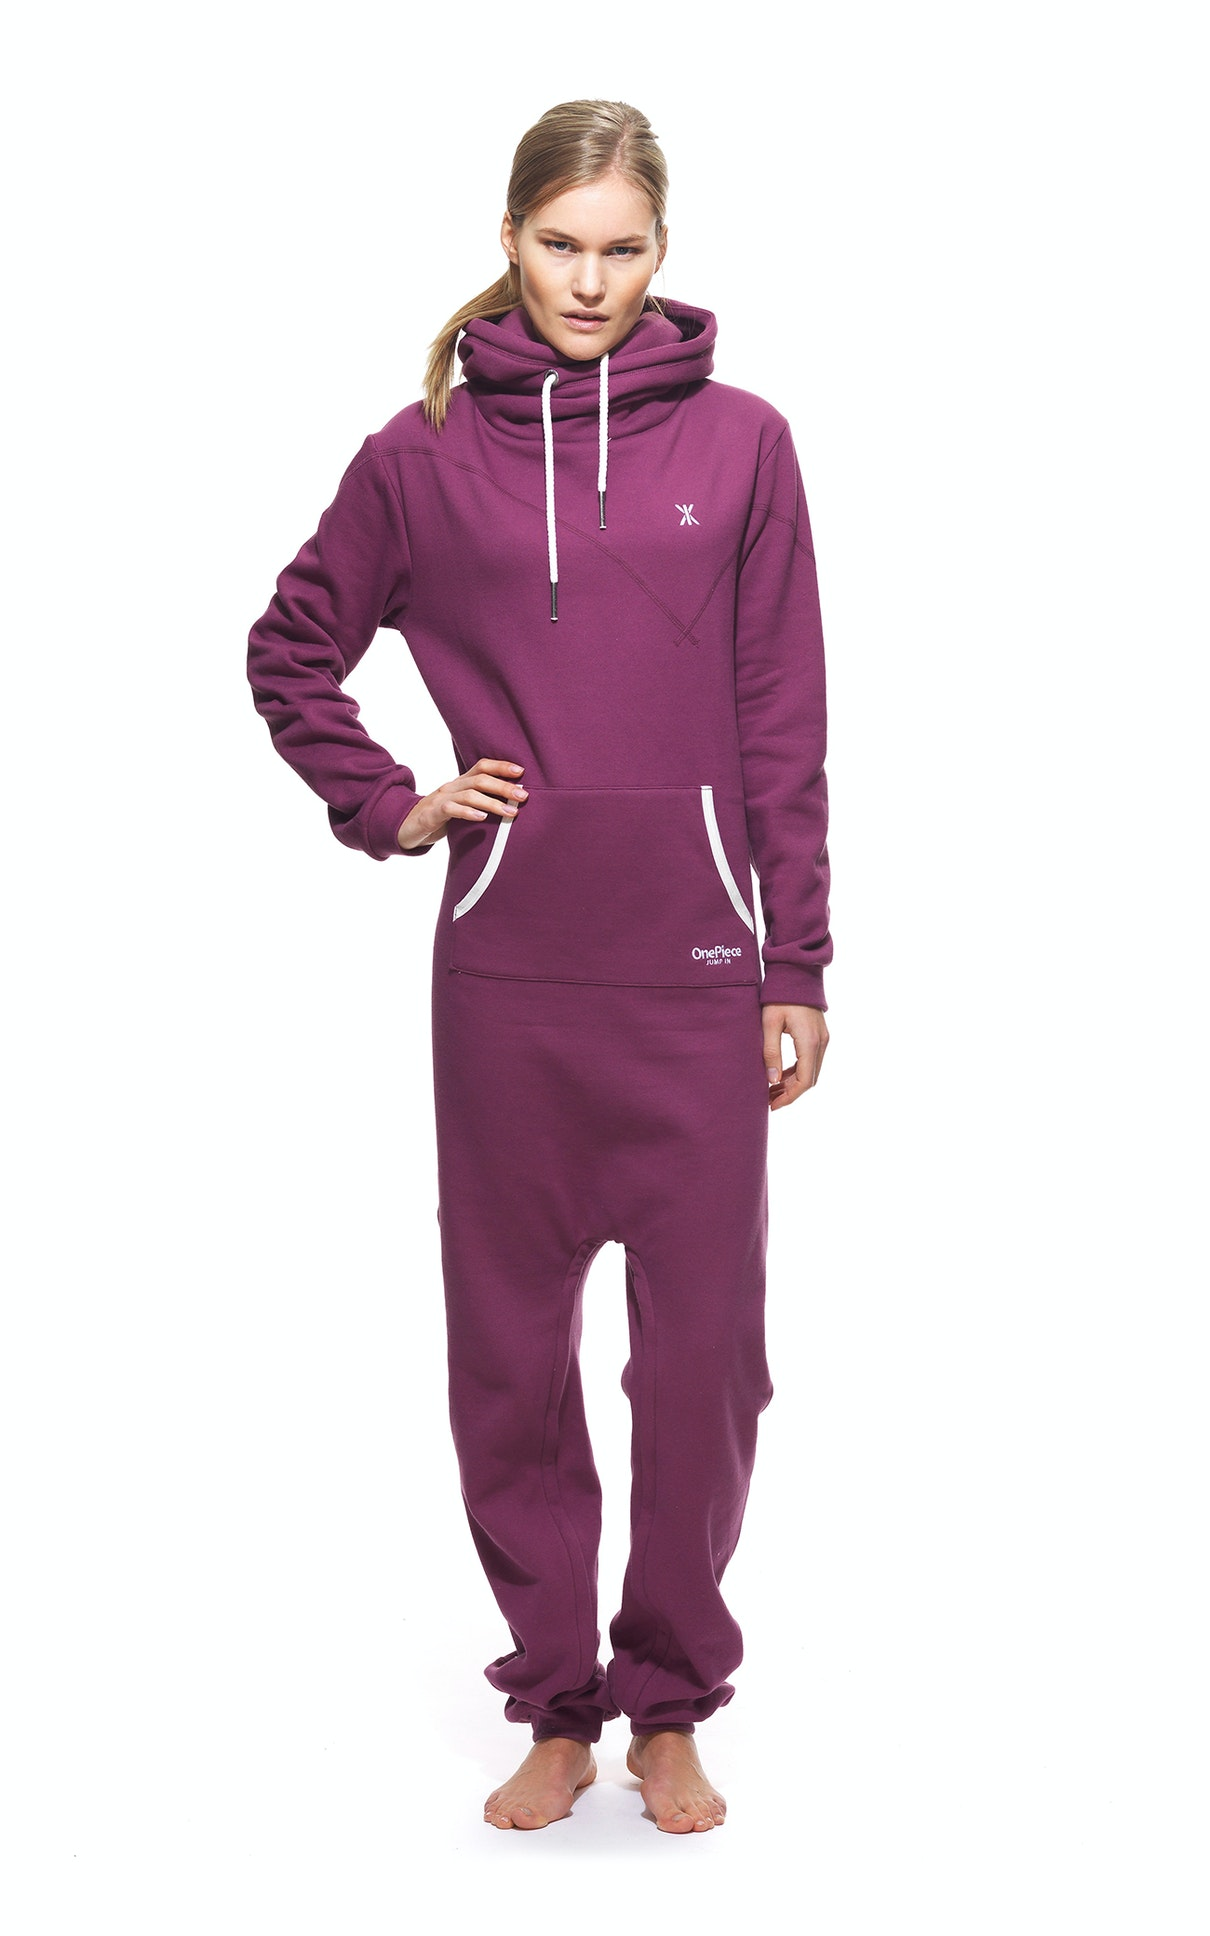 joey onesie wine purple. Black Bedroom Furniture Sets. Home Design Ideas